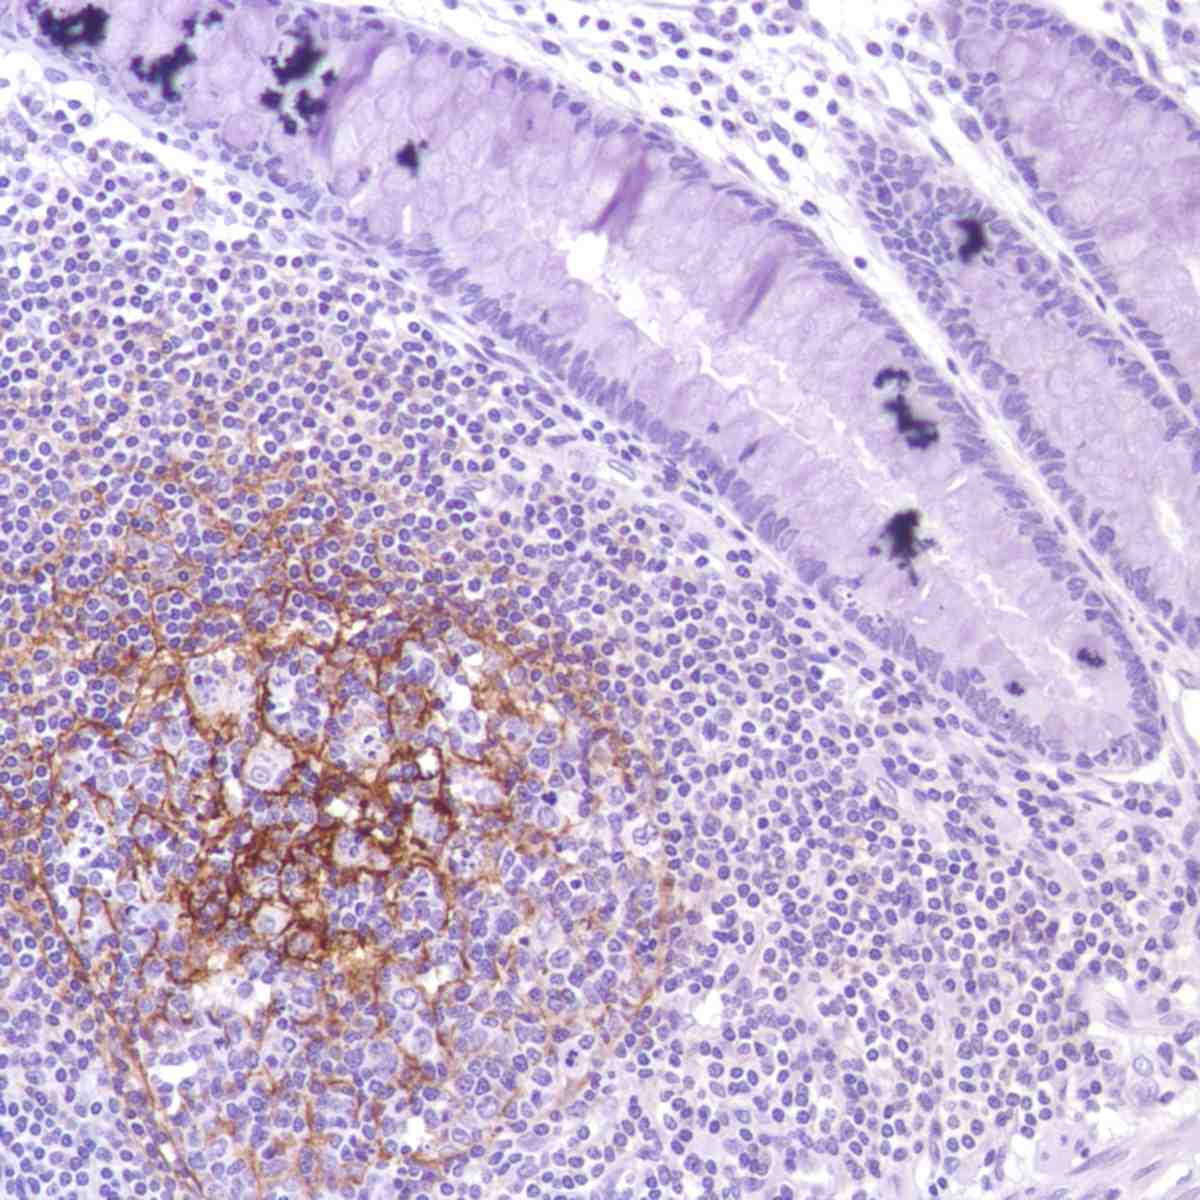 Human Colon stained with anti-CD35 antibody